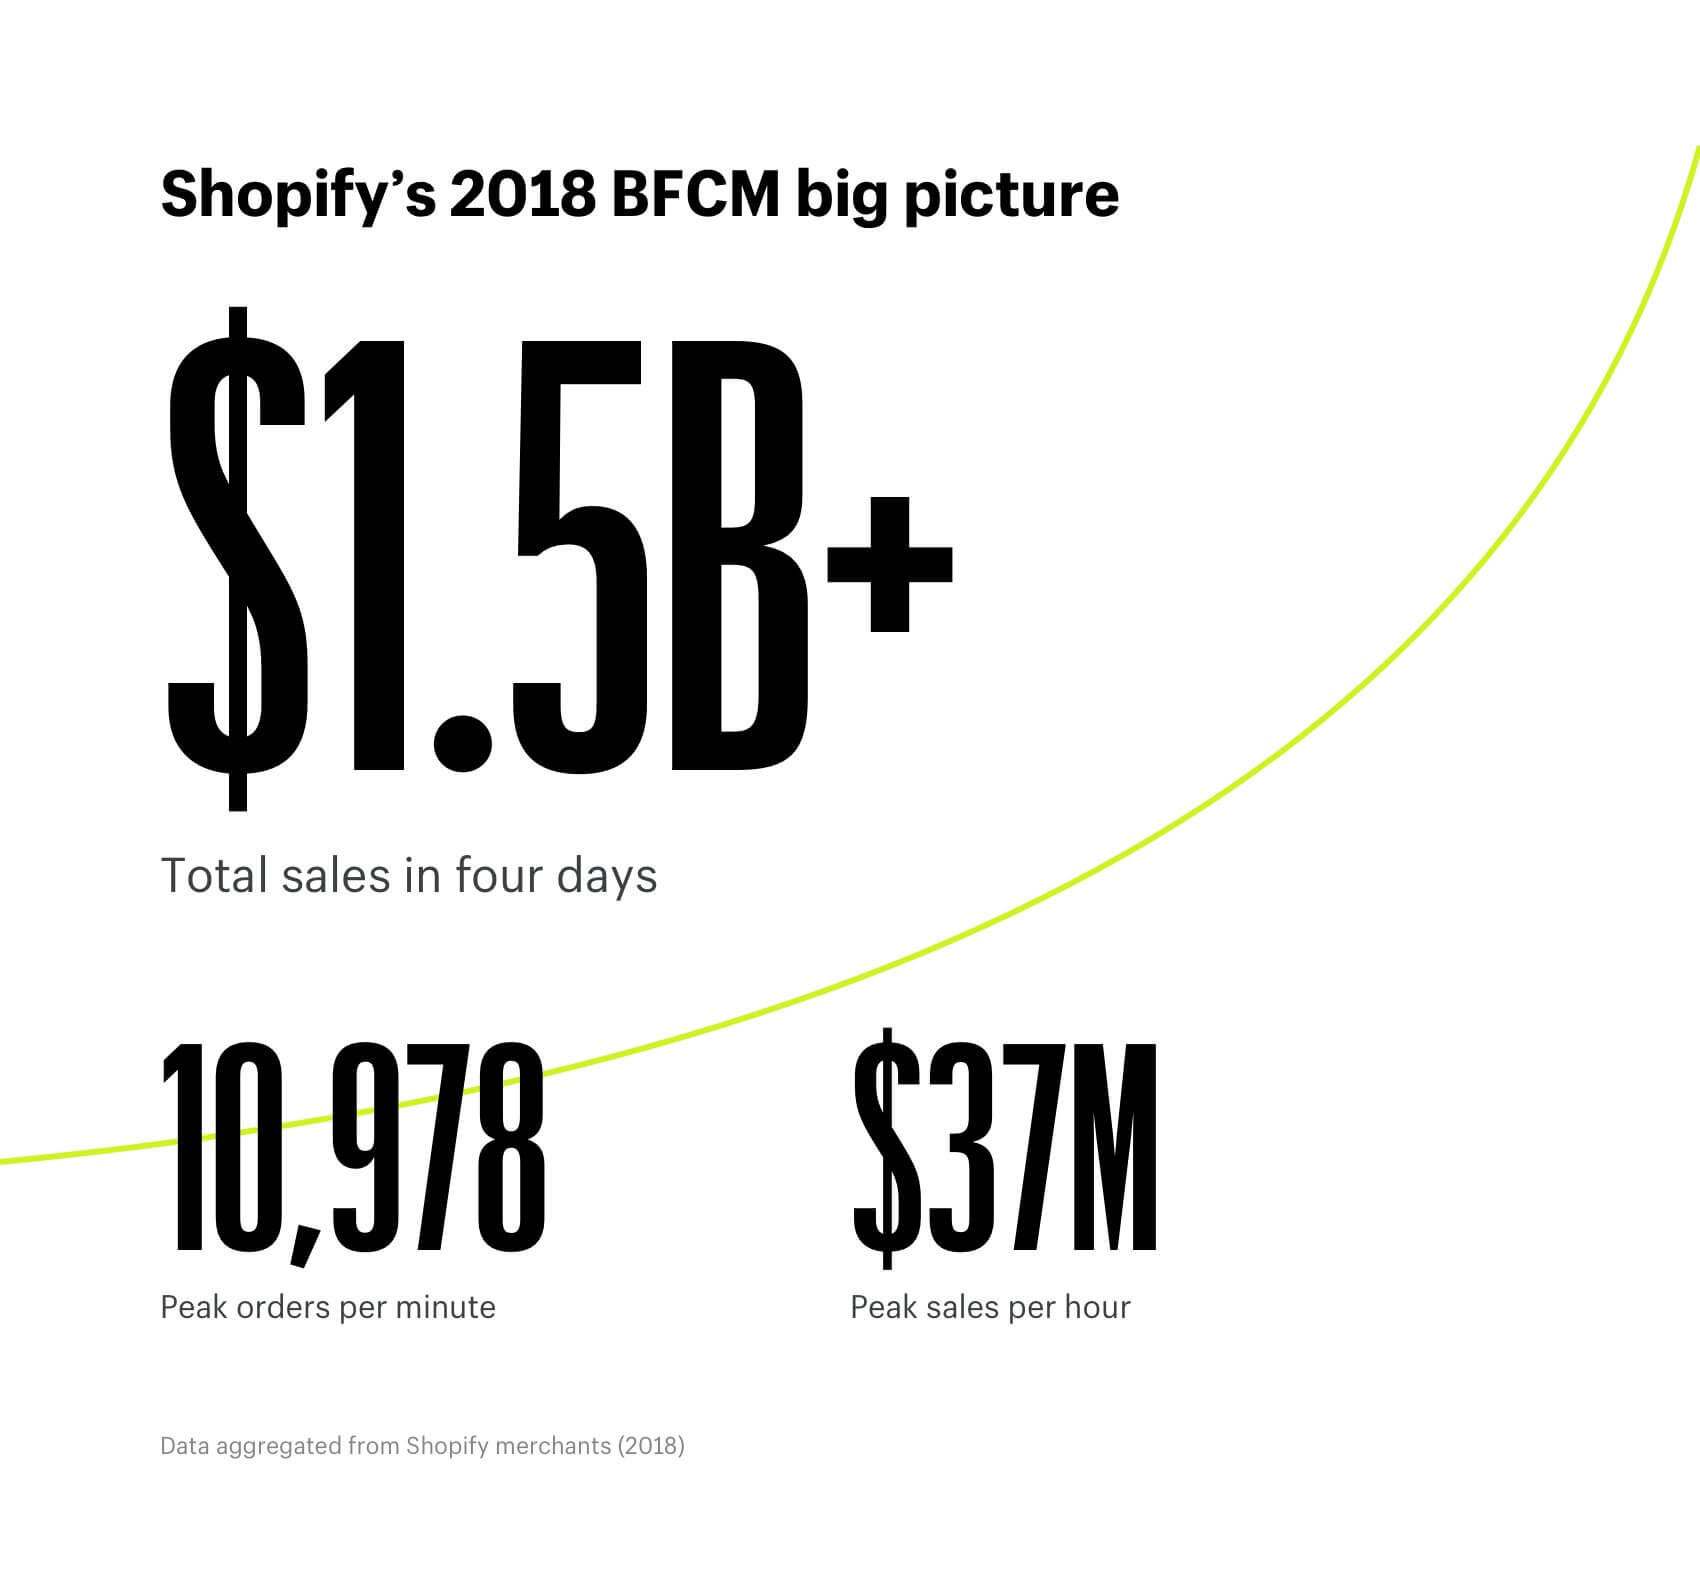 Shopify's 2018 BFCM big picture statistics